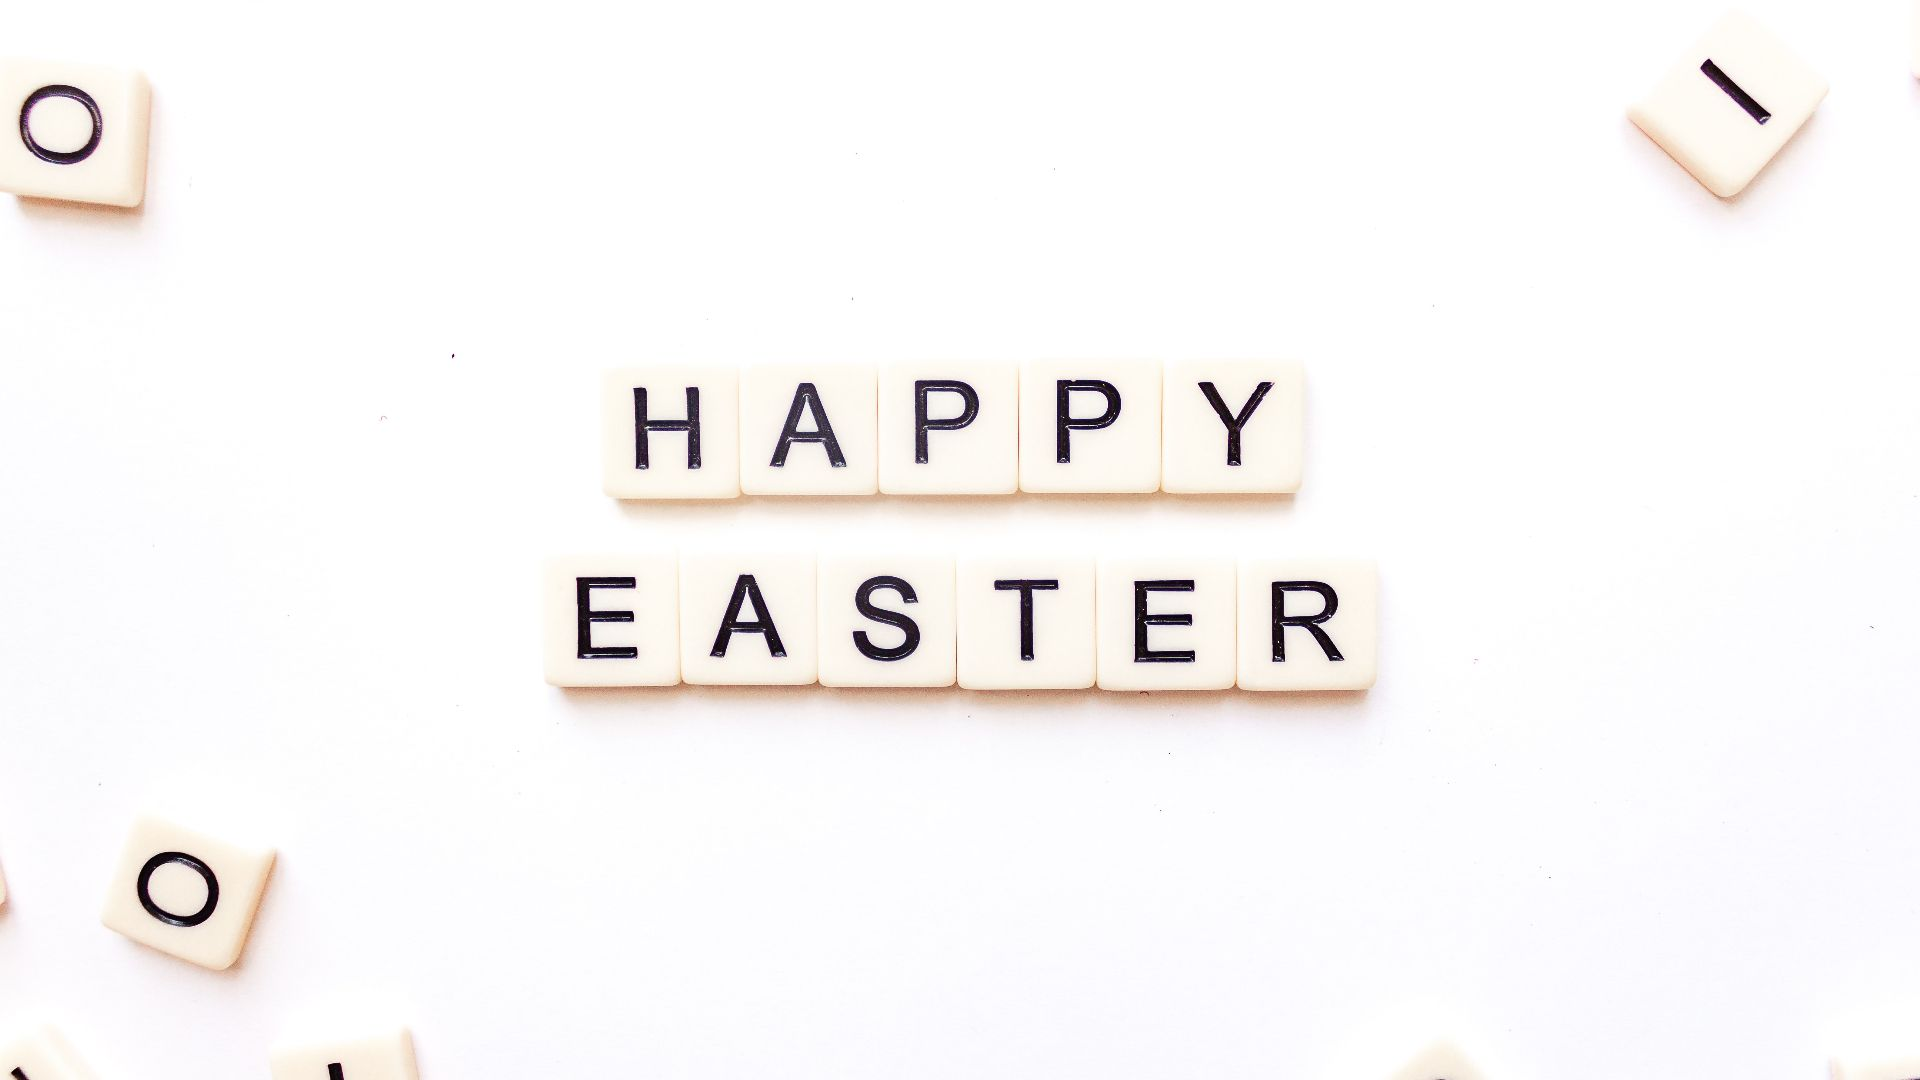 scrabble letters spelling out Happy Easter